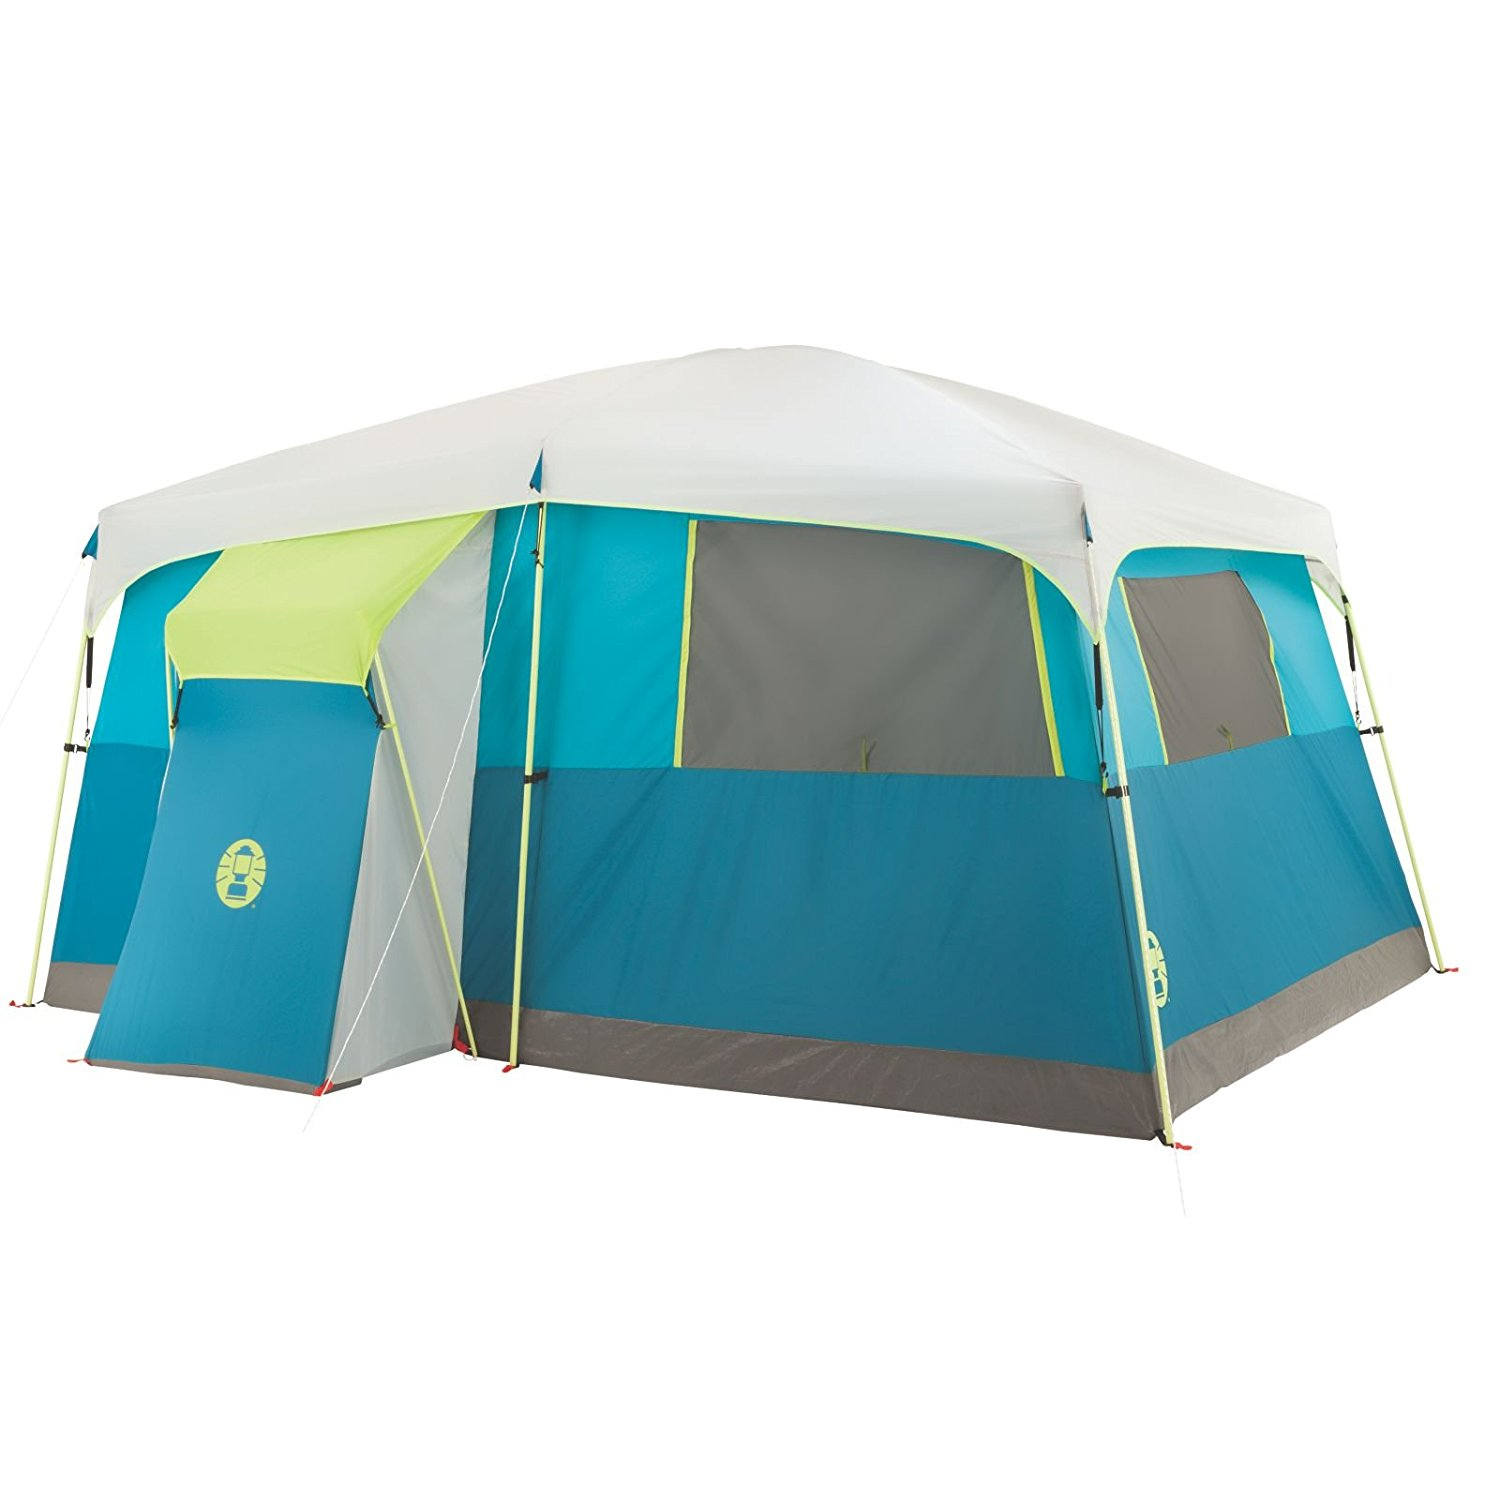 Coleman tent that has hinged door and a closet with rack for hanging clothes and storing  sc 1 st  Didnu0027t Know I Wanted That & 8-PERSON TENT WITH CLOSET u0026 HINGED DOOR - Didnu0027t Know I Wanted That